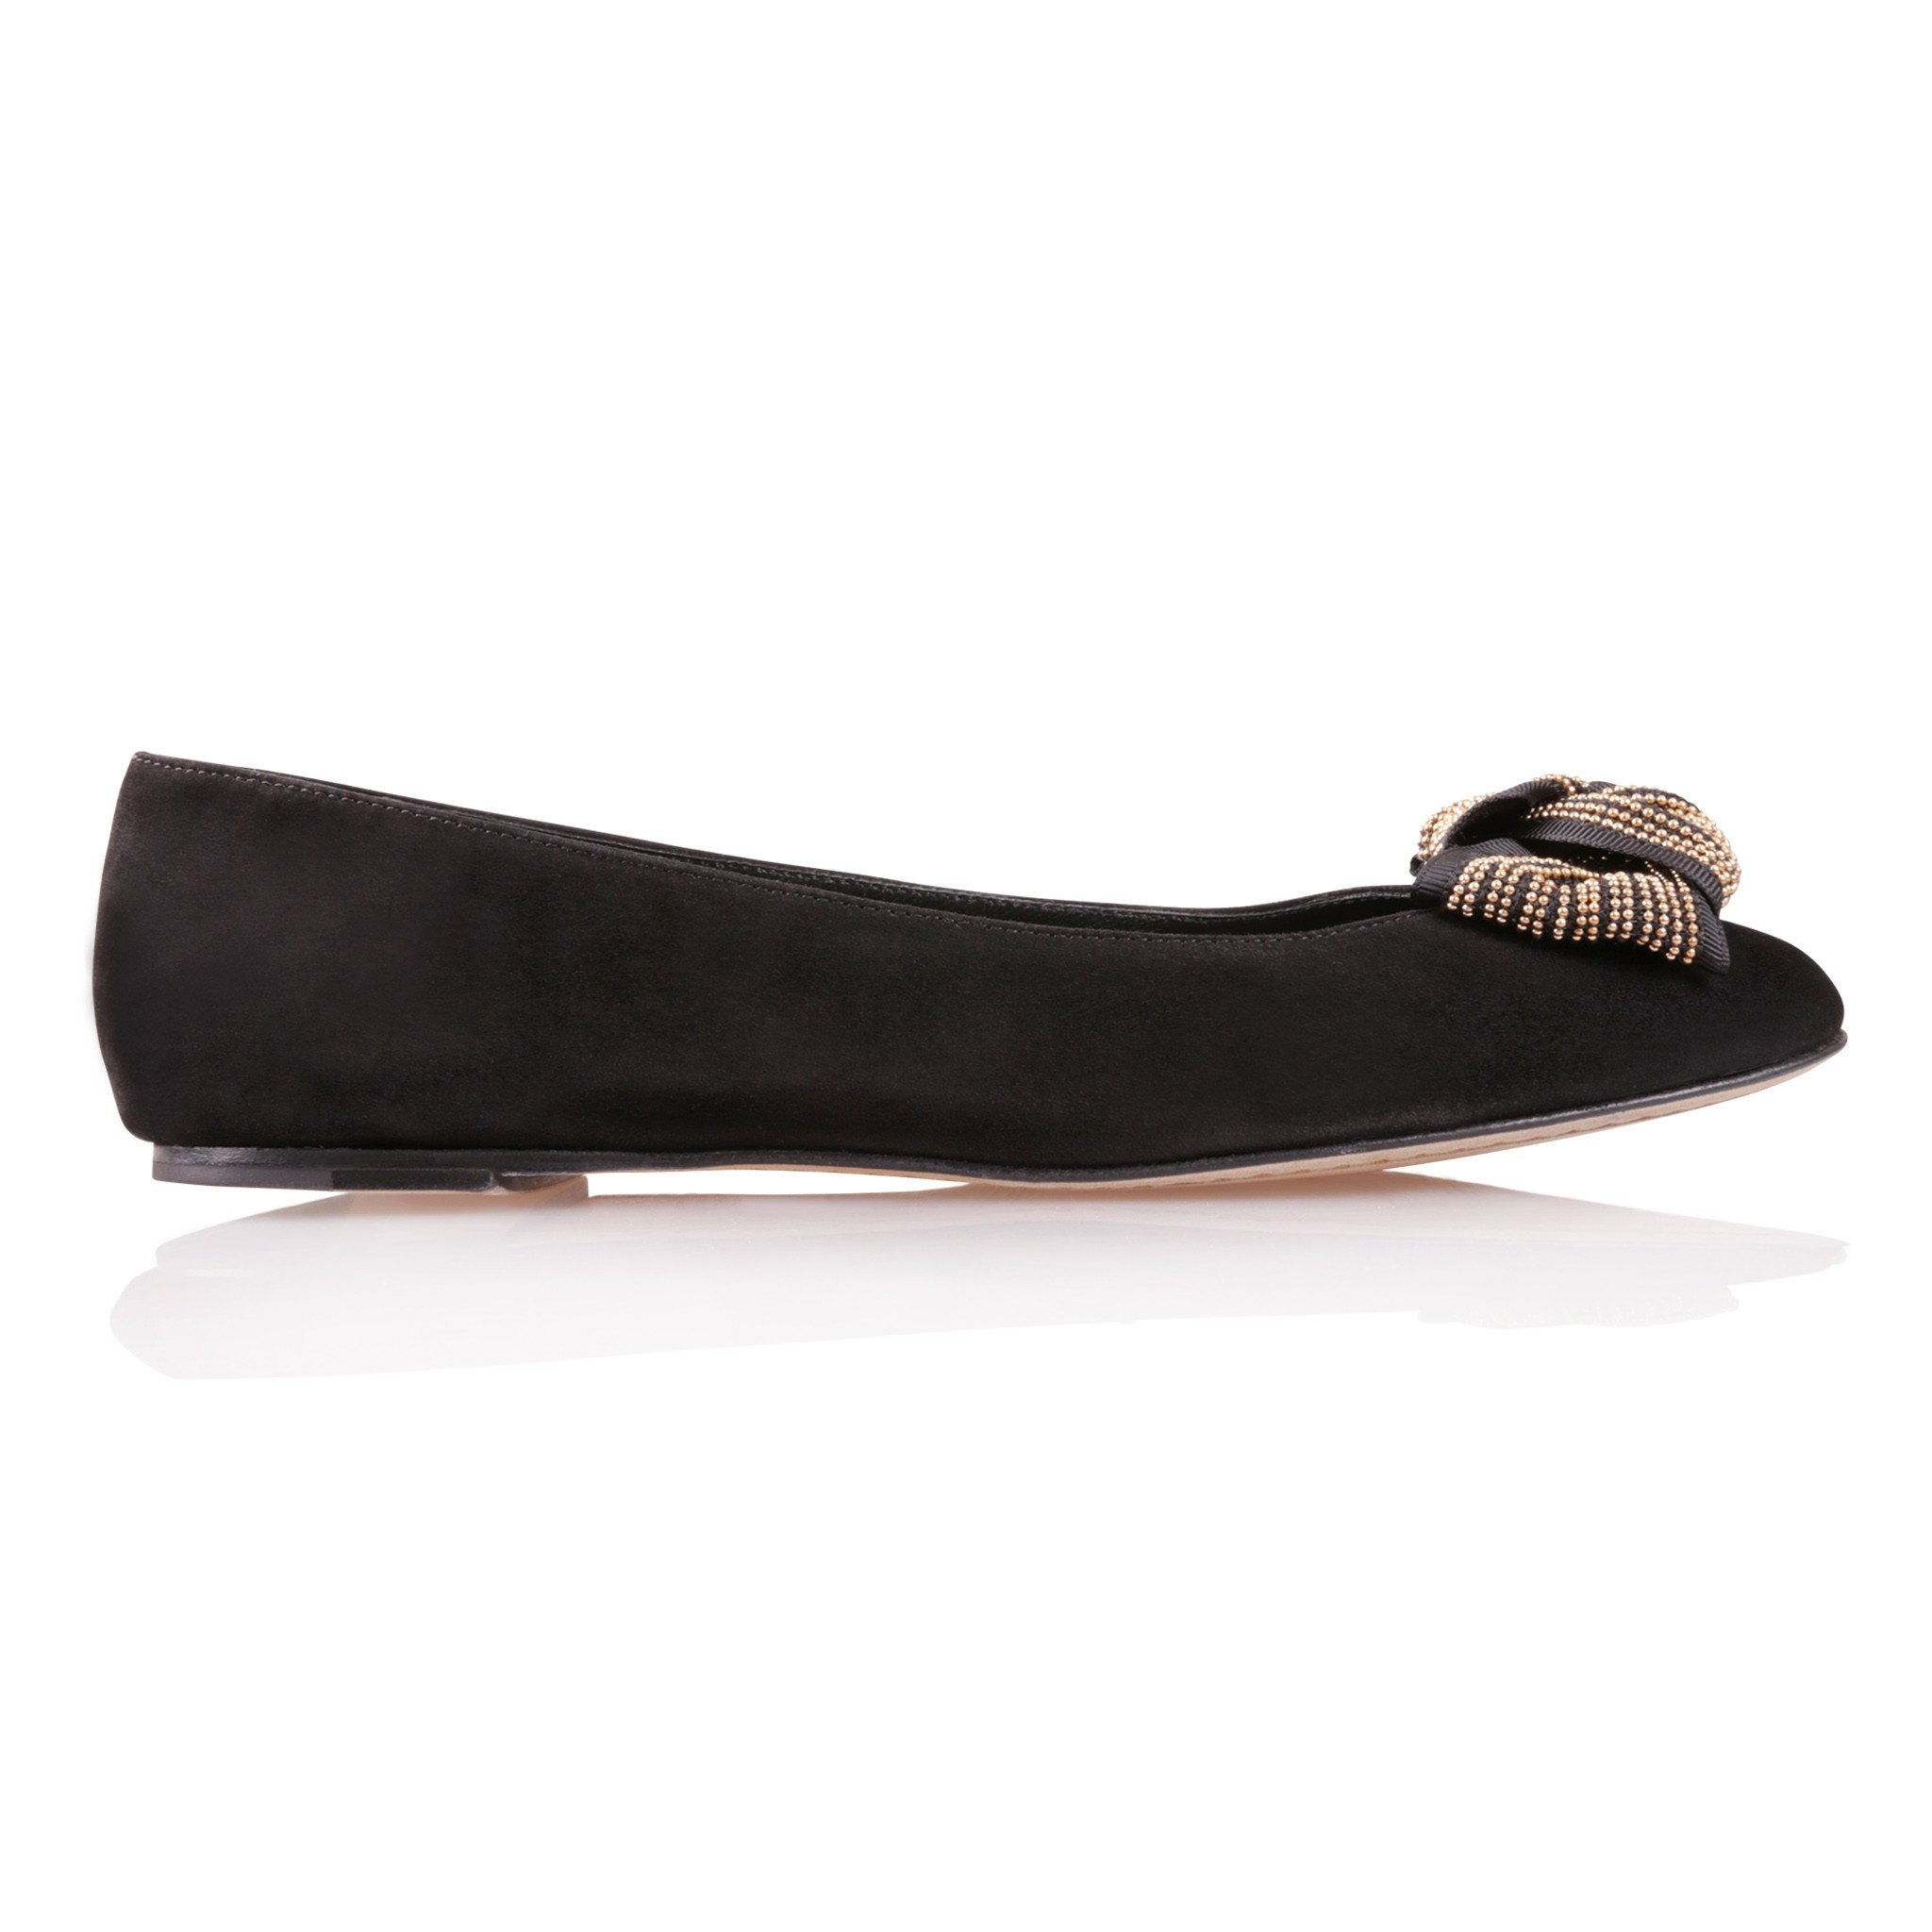 VENEZIA - Velukid Nero + Gold Stud Bow, VIAJIYU - Women's Hand Made Sustainable Luxury Shoes. Made in Italy. Made to Order.